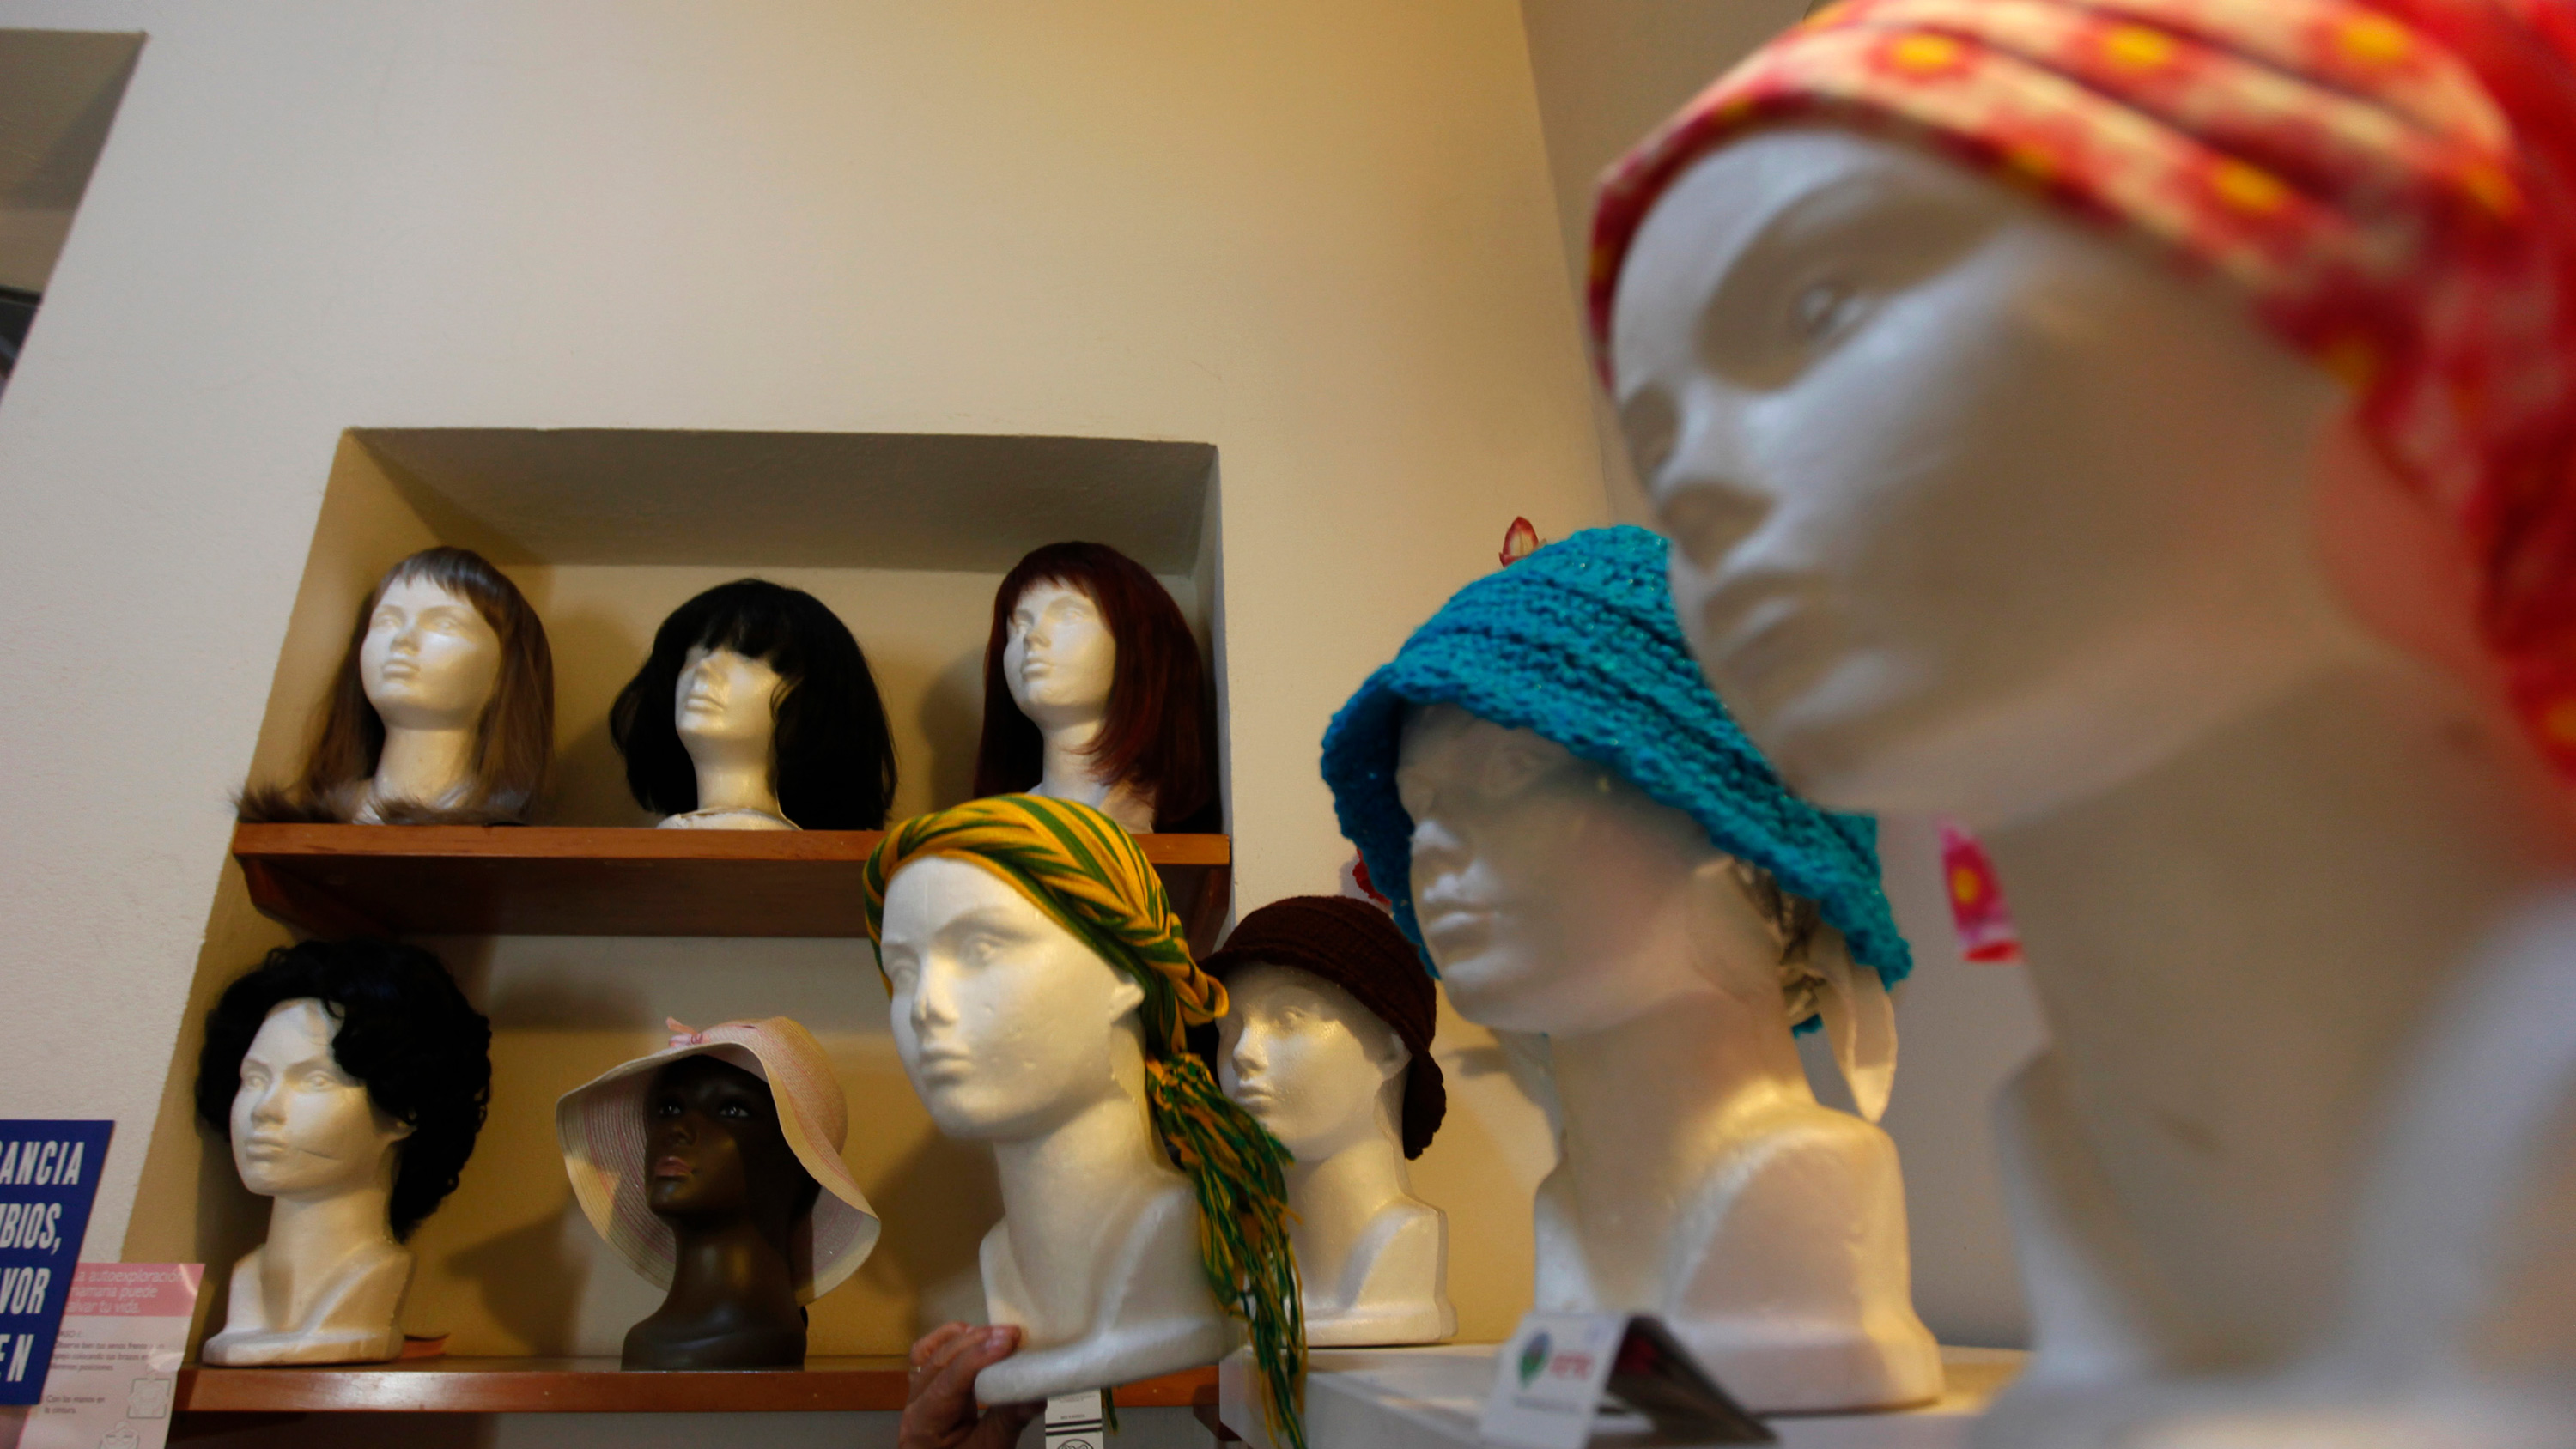 The photo shows a room with mannequin heads and wigs.